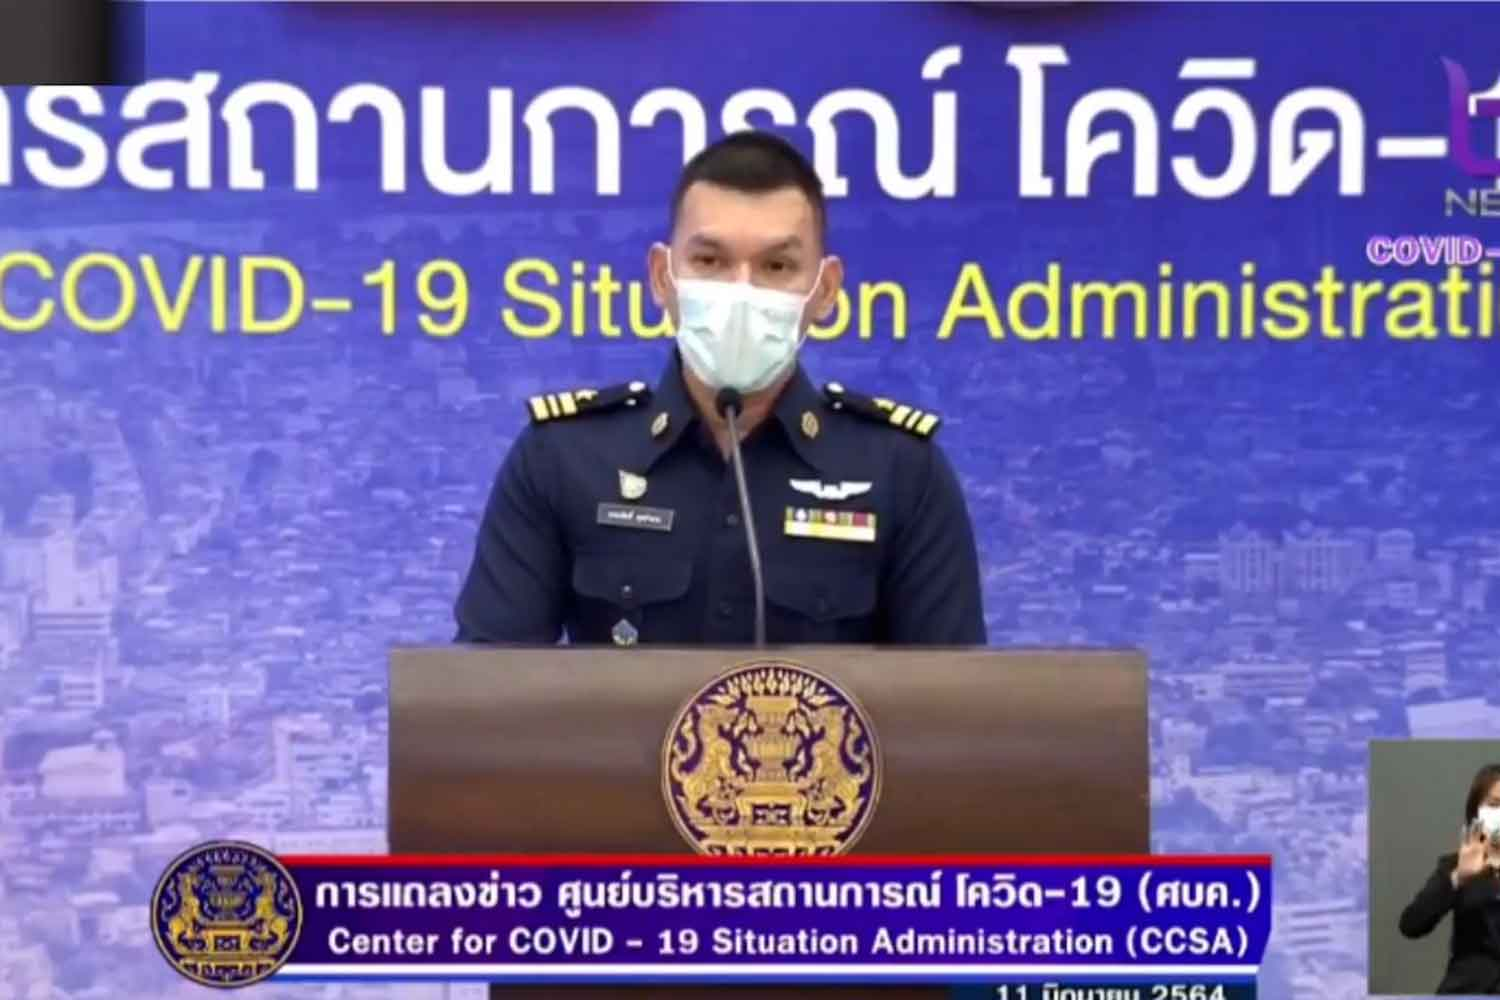 Dr Atthasit Dul-Amnuay, chief of forensics at Bhumibol Adulyadej Hospital, speaks about the death of a 46-year-old woman within 12 hours of receiving a Covid-19 vaccine, at Government House in Bangkok on Friday. (Screenshot)